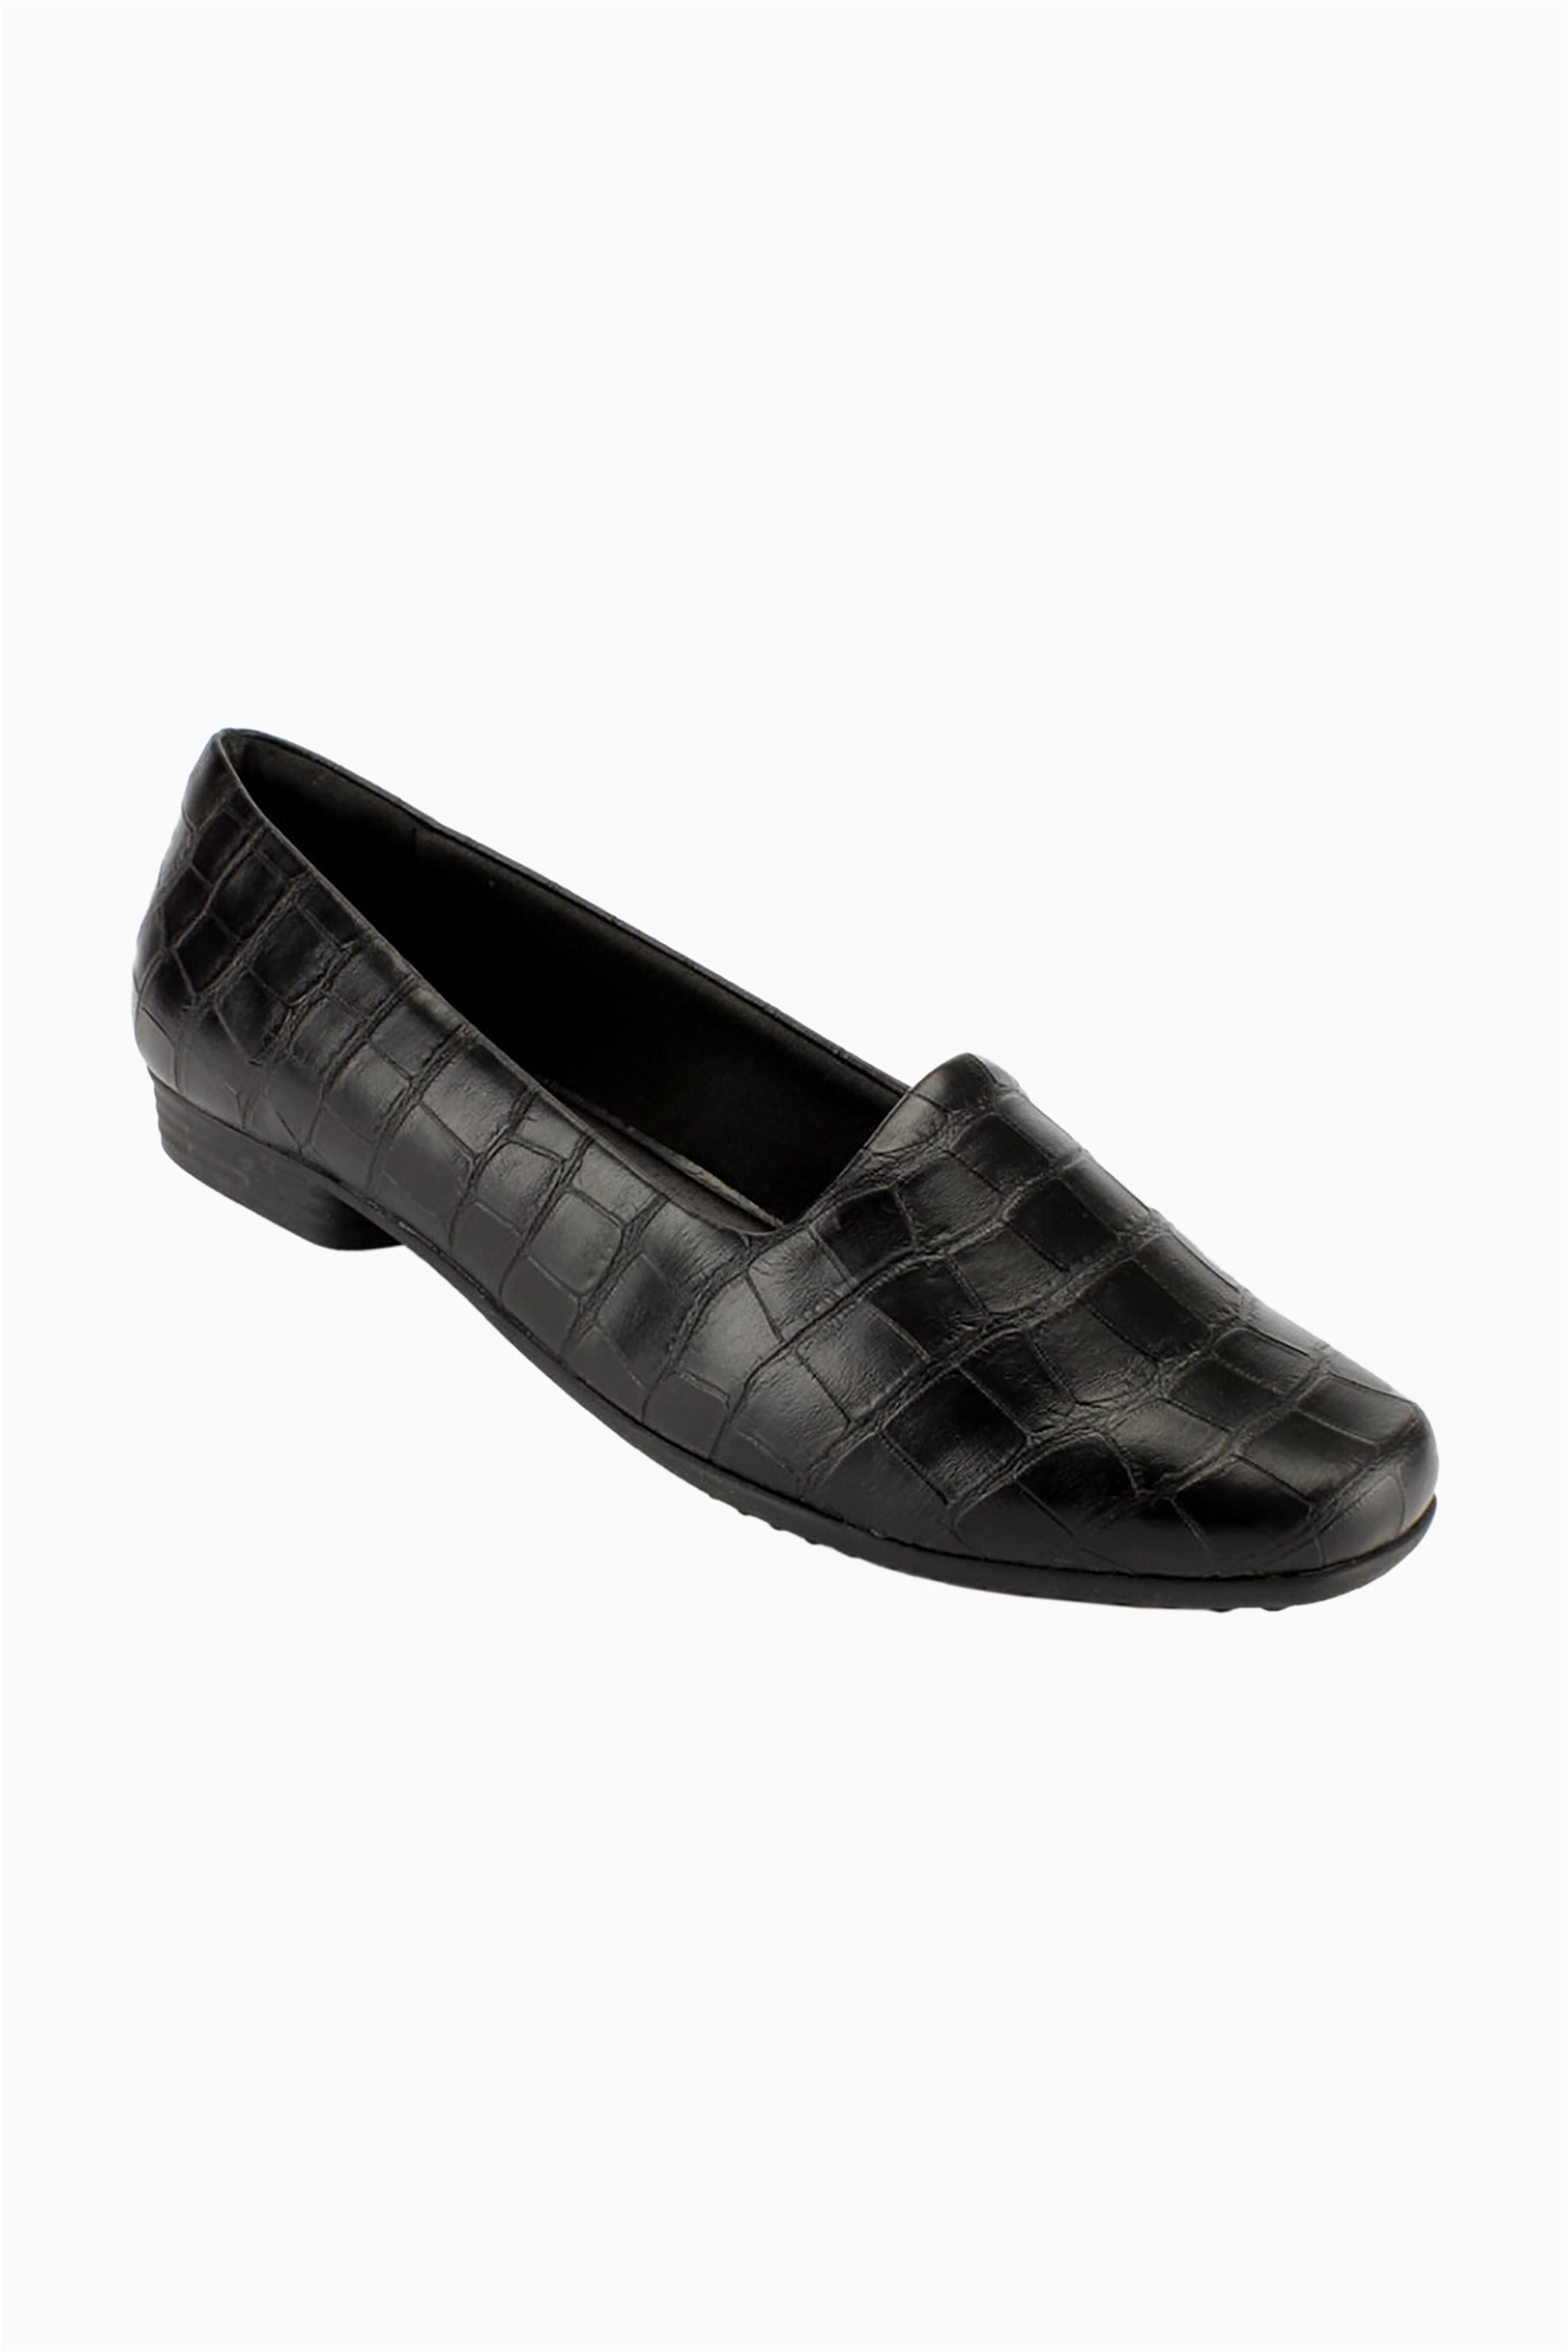 Piccadilly γυναικεία ανατομικά loafers croco – 25013200000247 – Μαύρο